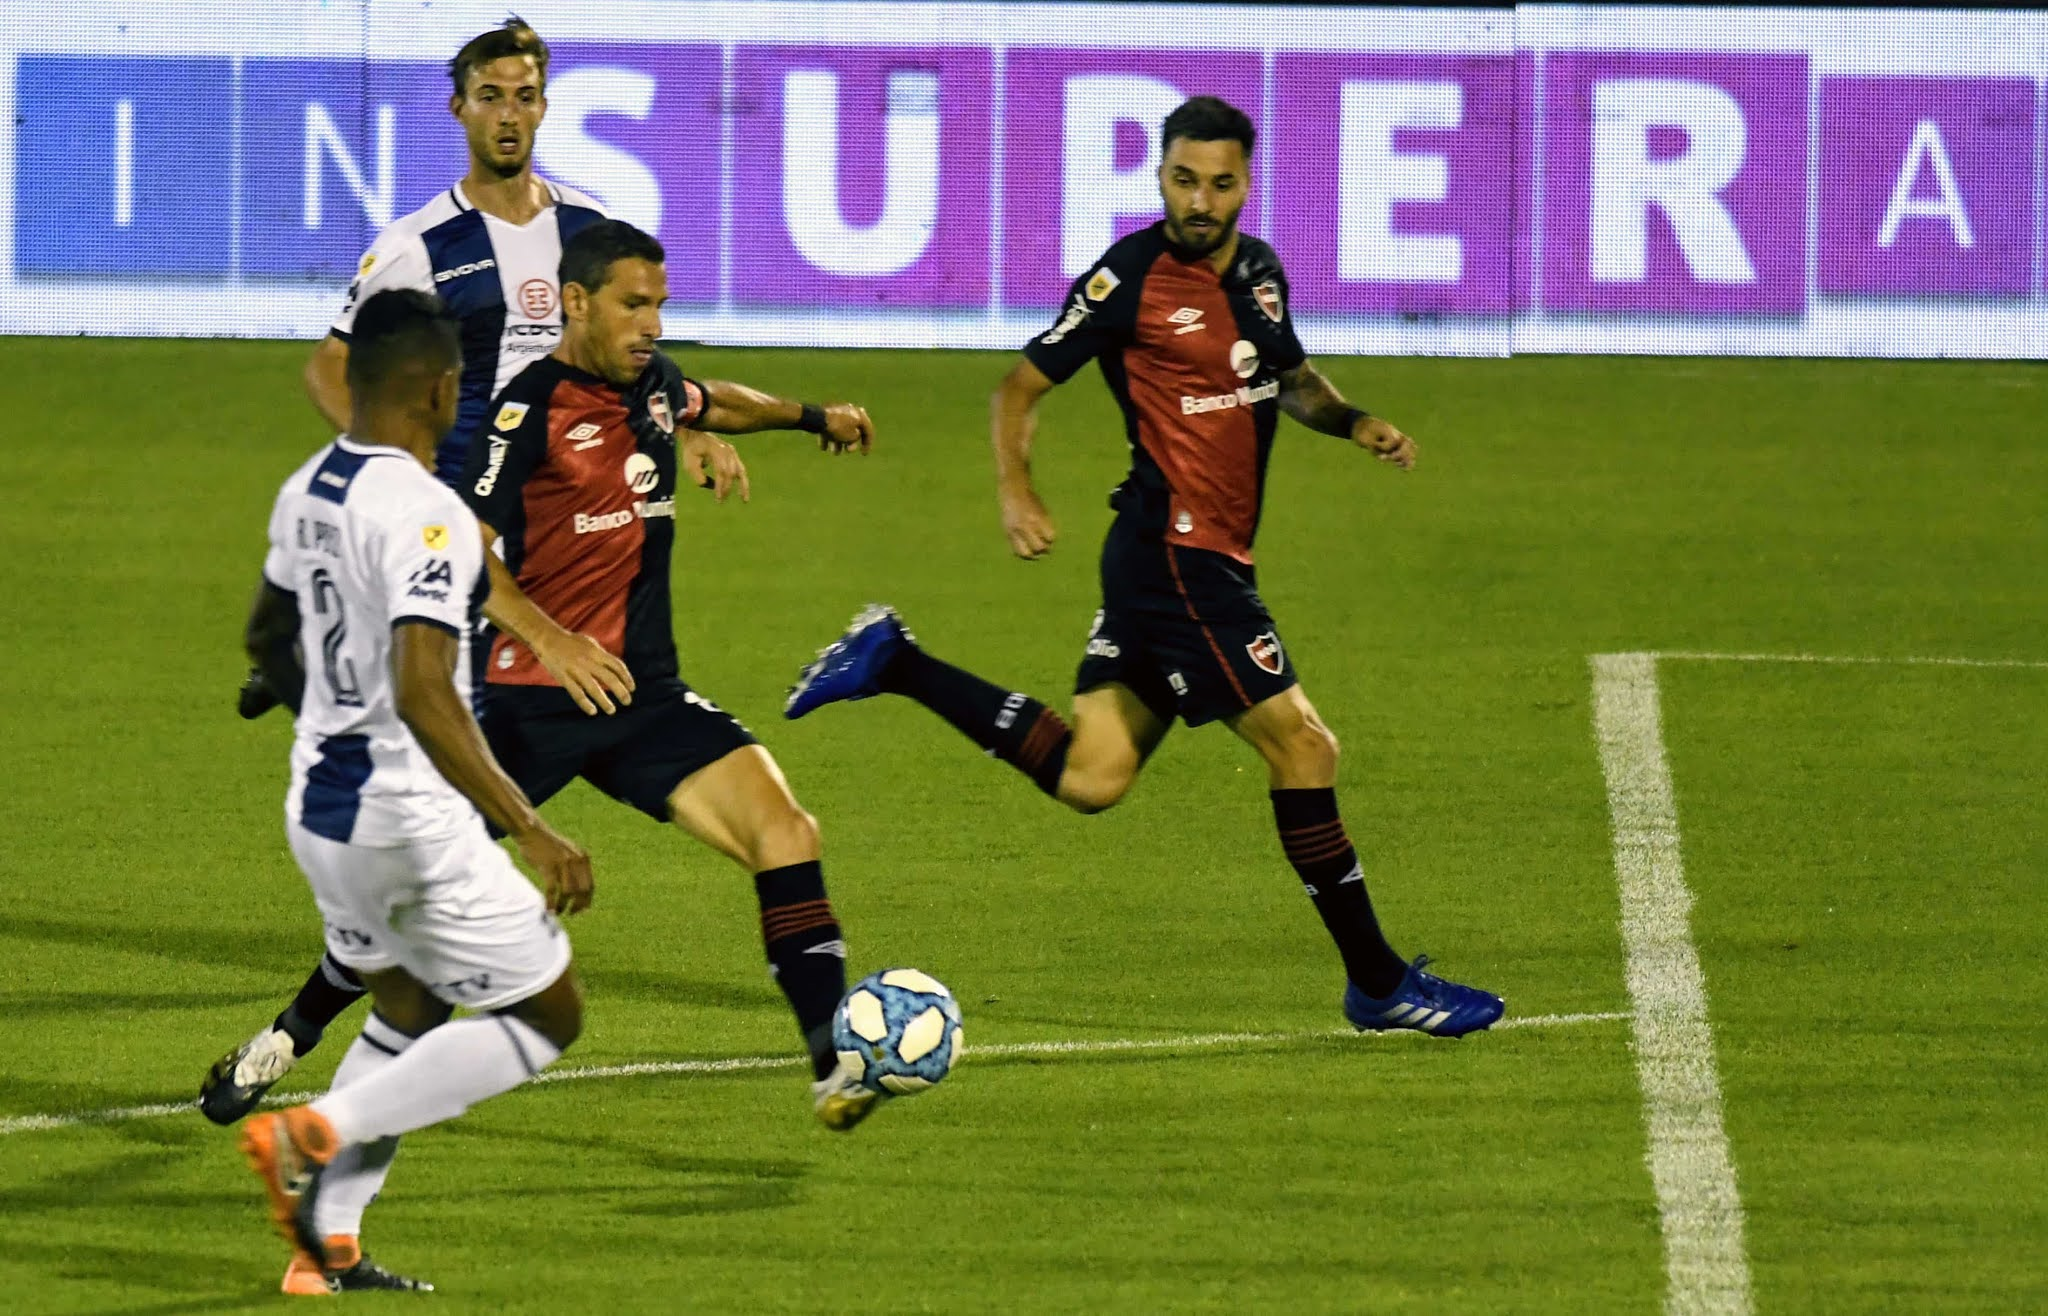 Newell's 1-1 Talleres